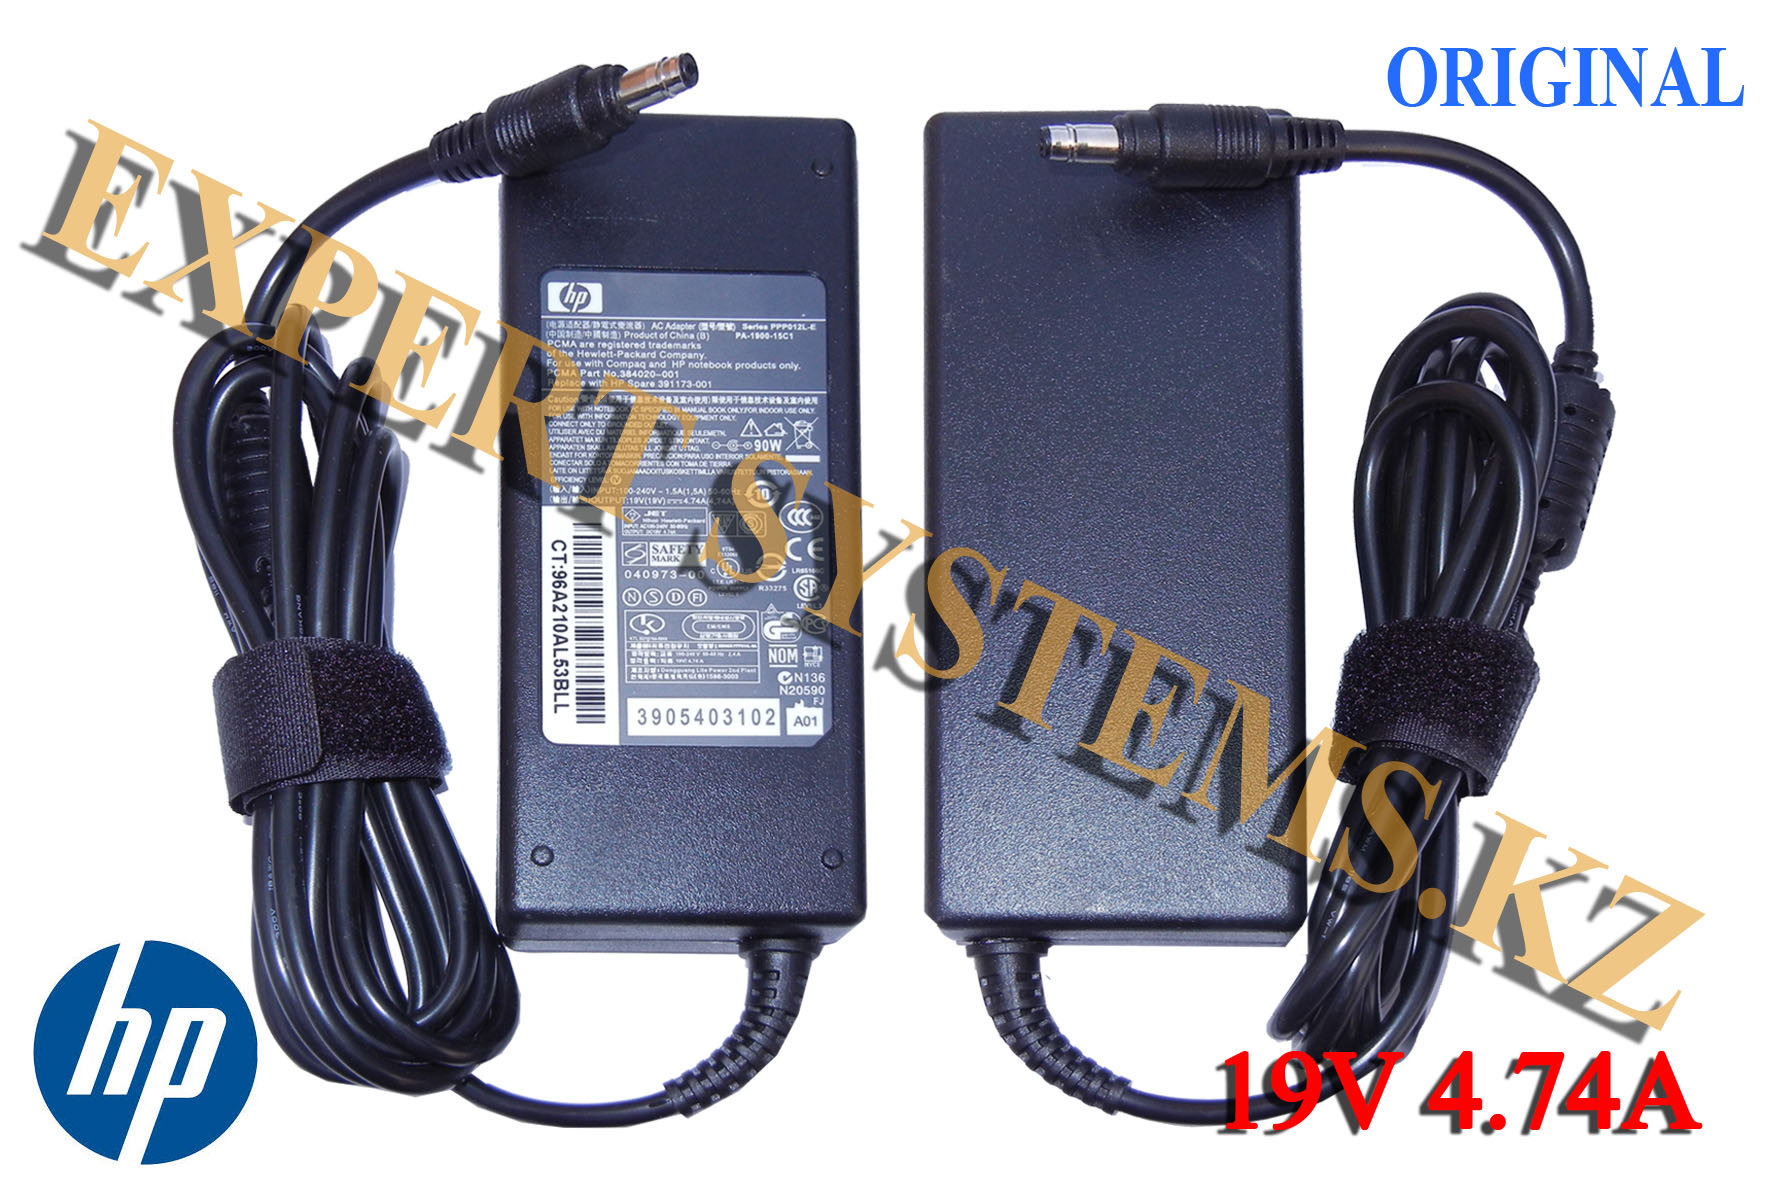 HP ADAPTER S